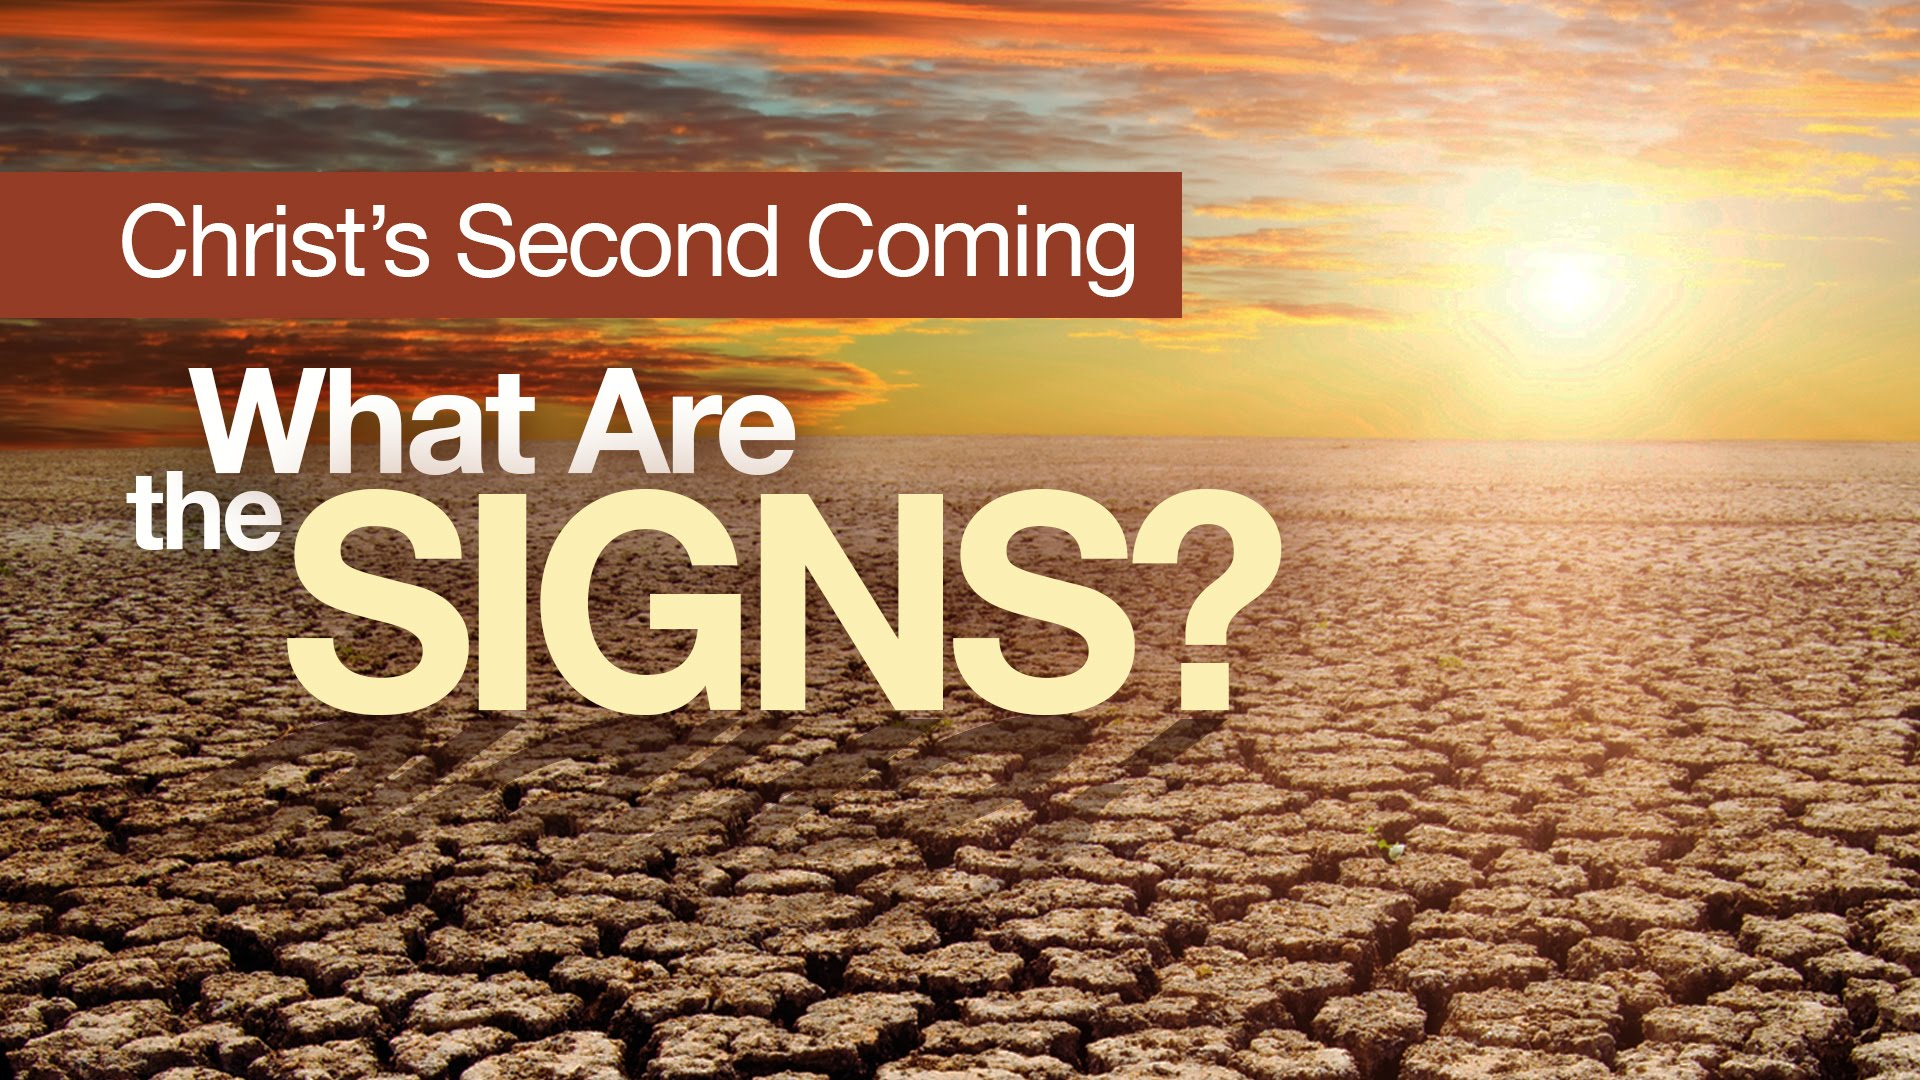 Christ's Second Coming: What Are the Signs?